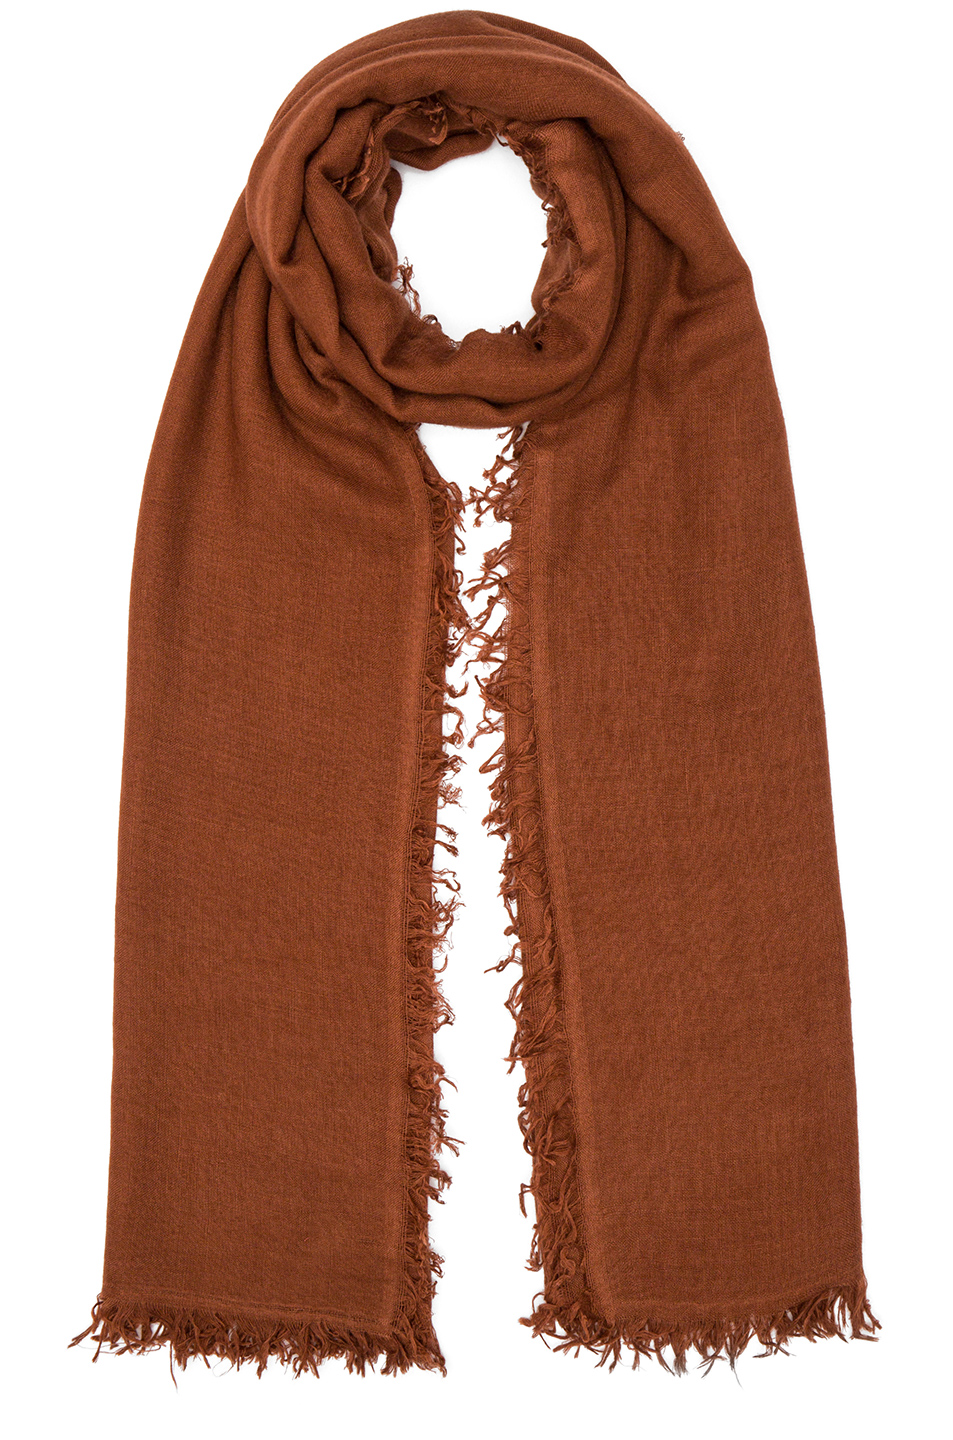 Ann Demeulemeester Scarf in Brown